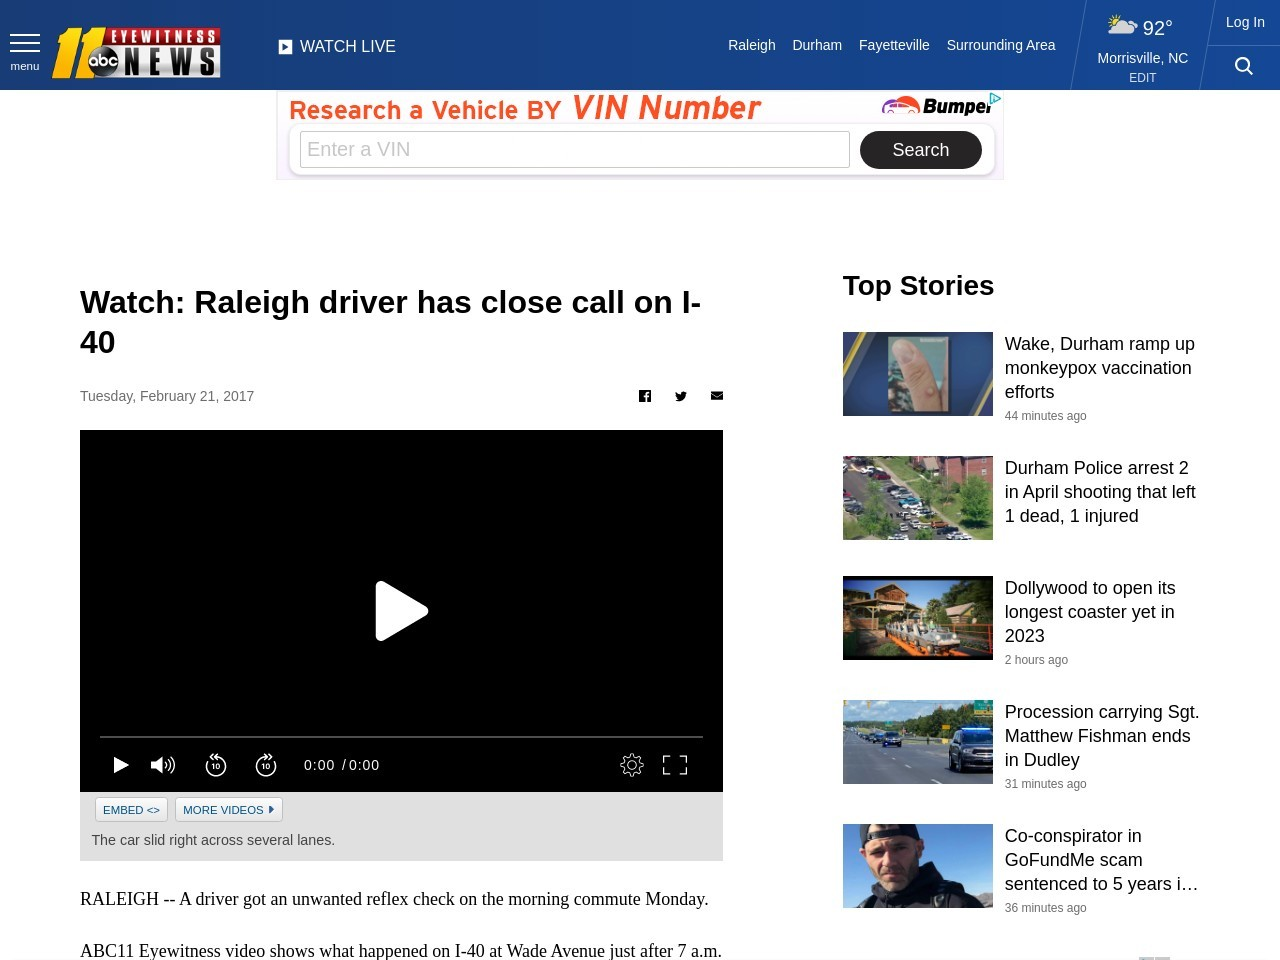 Watch: Raleigh driver has close call on I-40